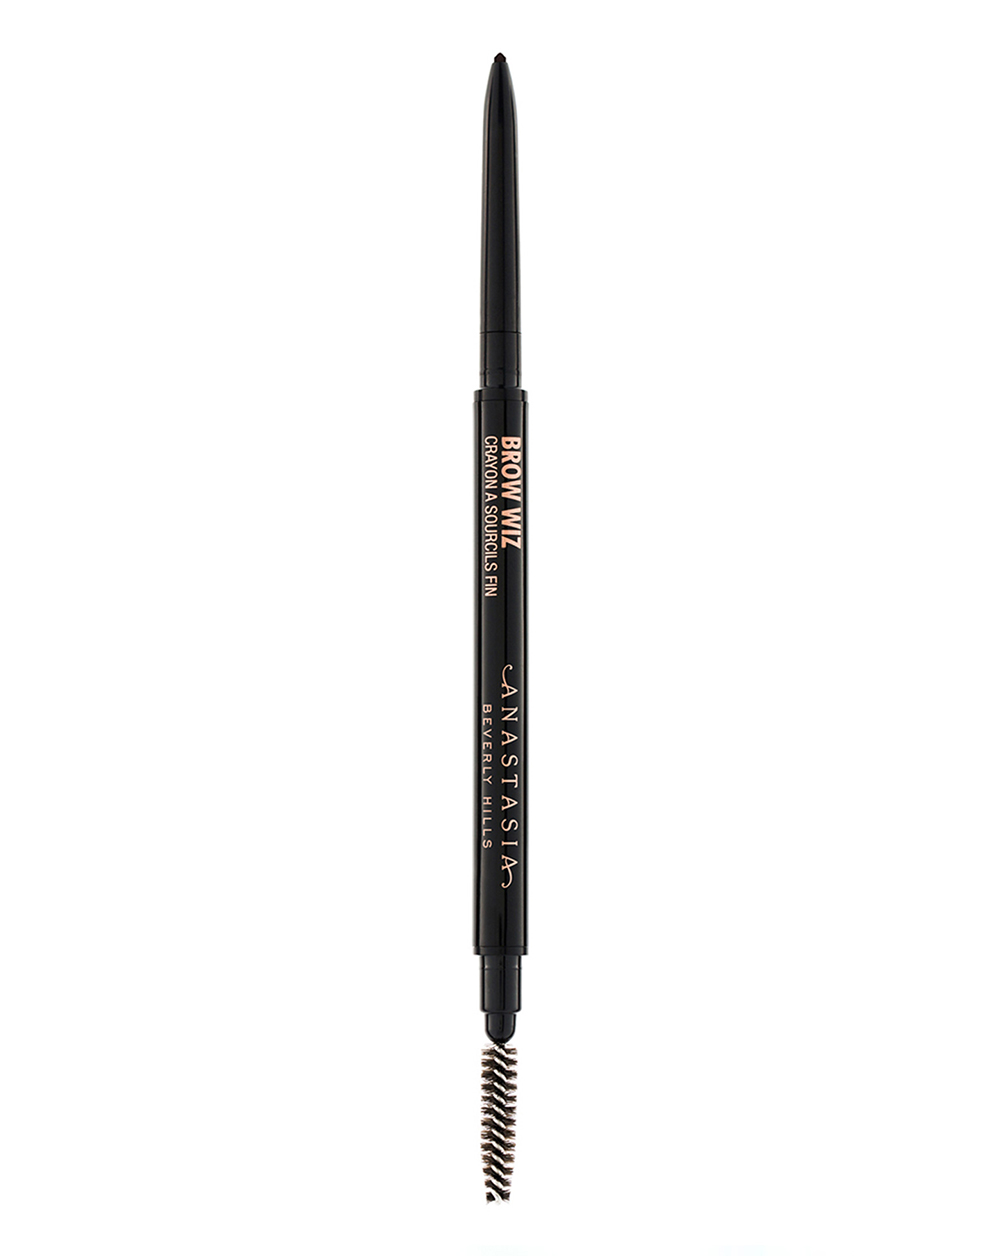 Anastasia Beverly Hills Brow Wiz in Chocolate